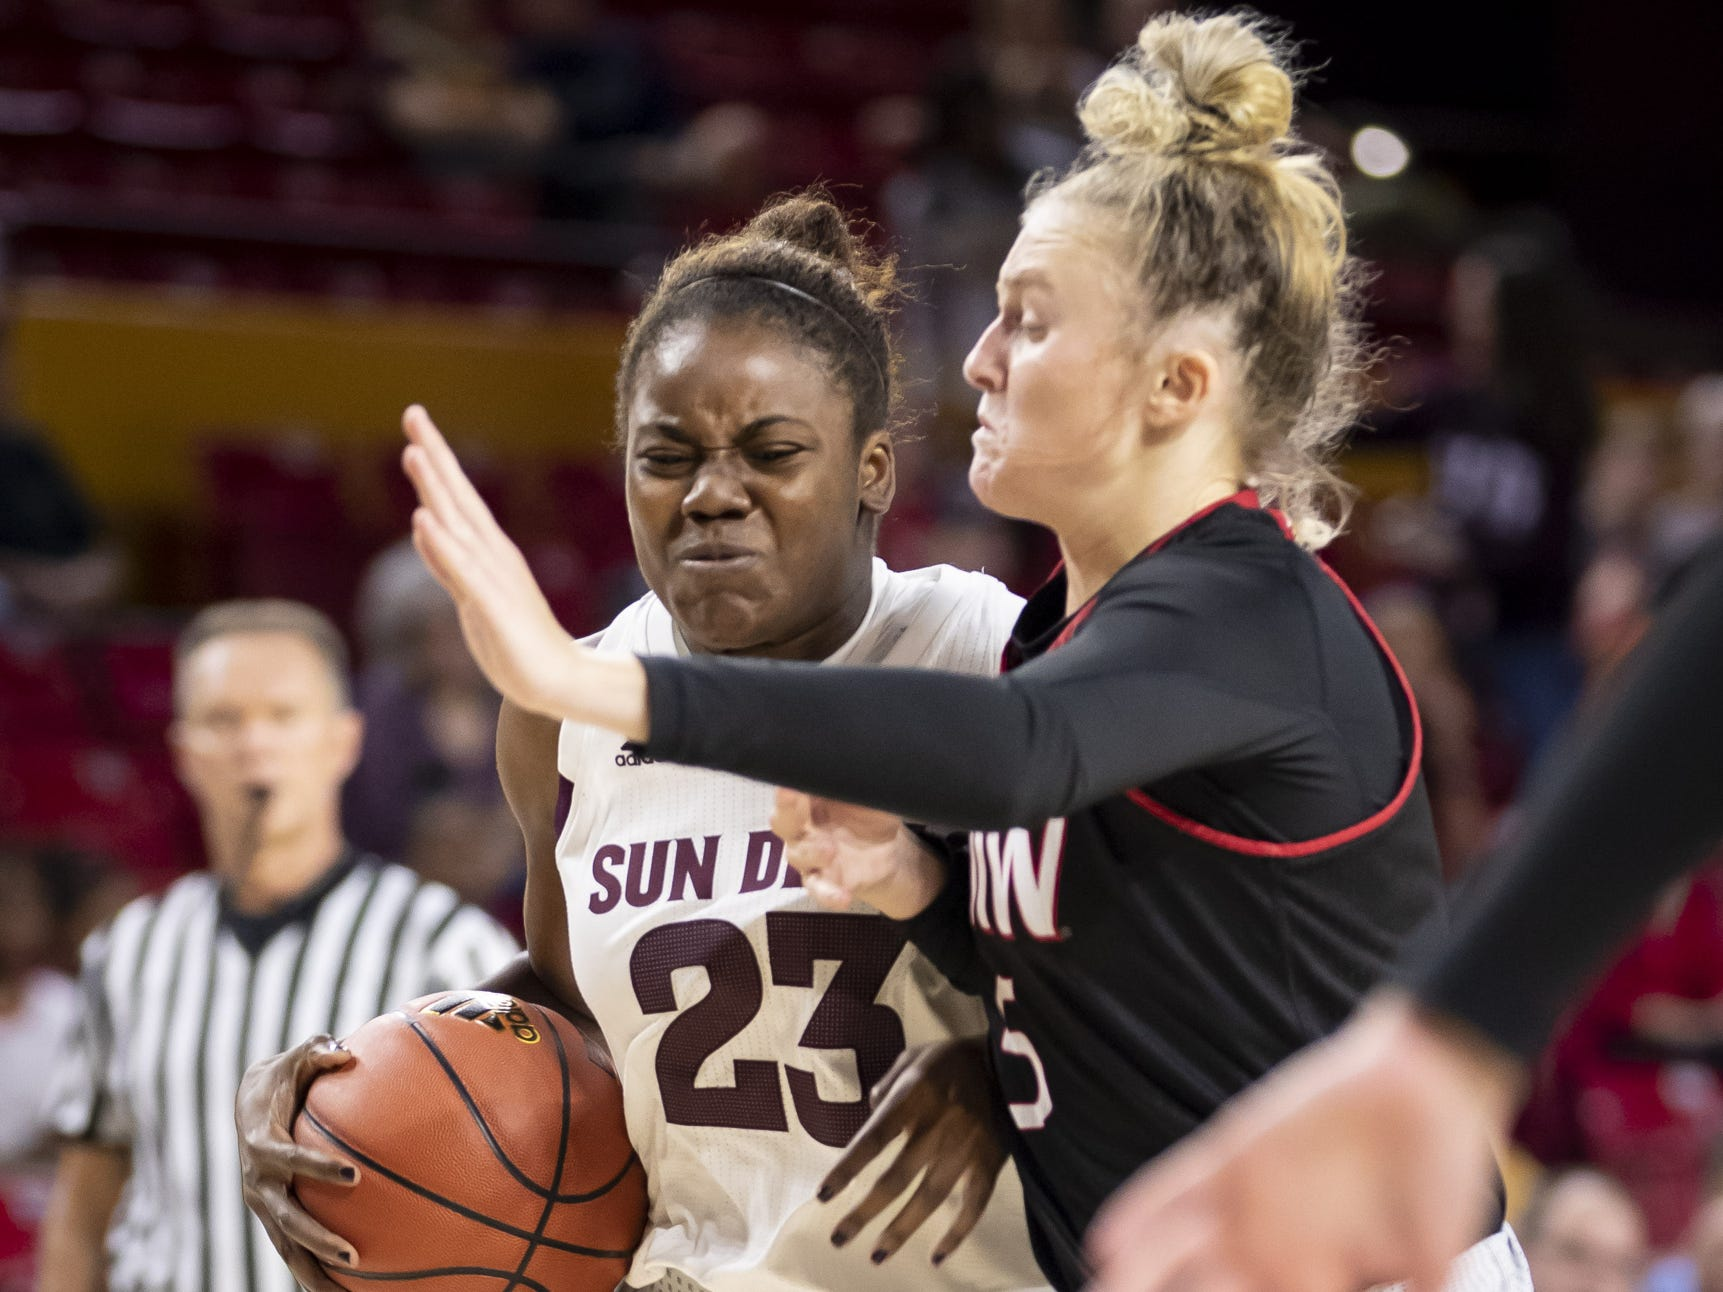 Forward Iris Mbulito (23) of the Arizona State Sun Devils drives to the basket against guard Kara Speer (5) of the Incarnate Word Cardinals at Wells Fargo Arena on Tuesday, November 6, 2018 in Tempe, Arizona.